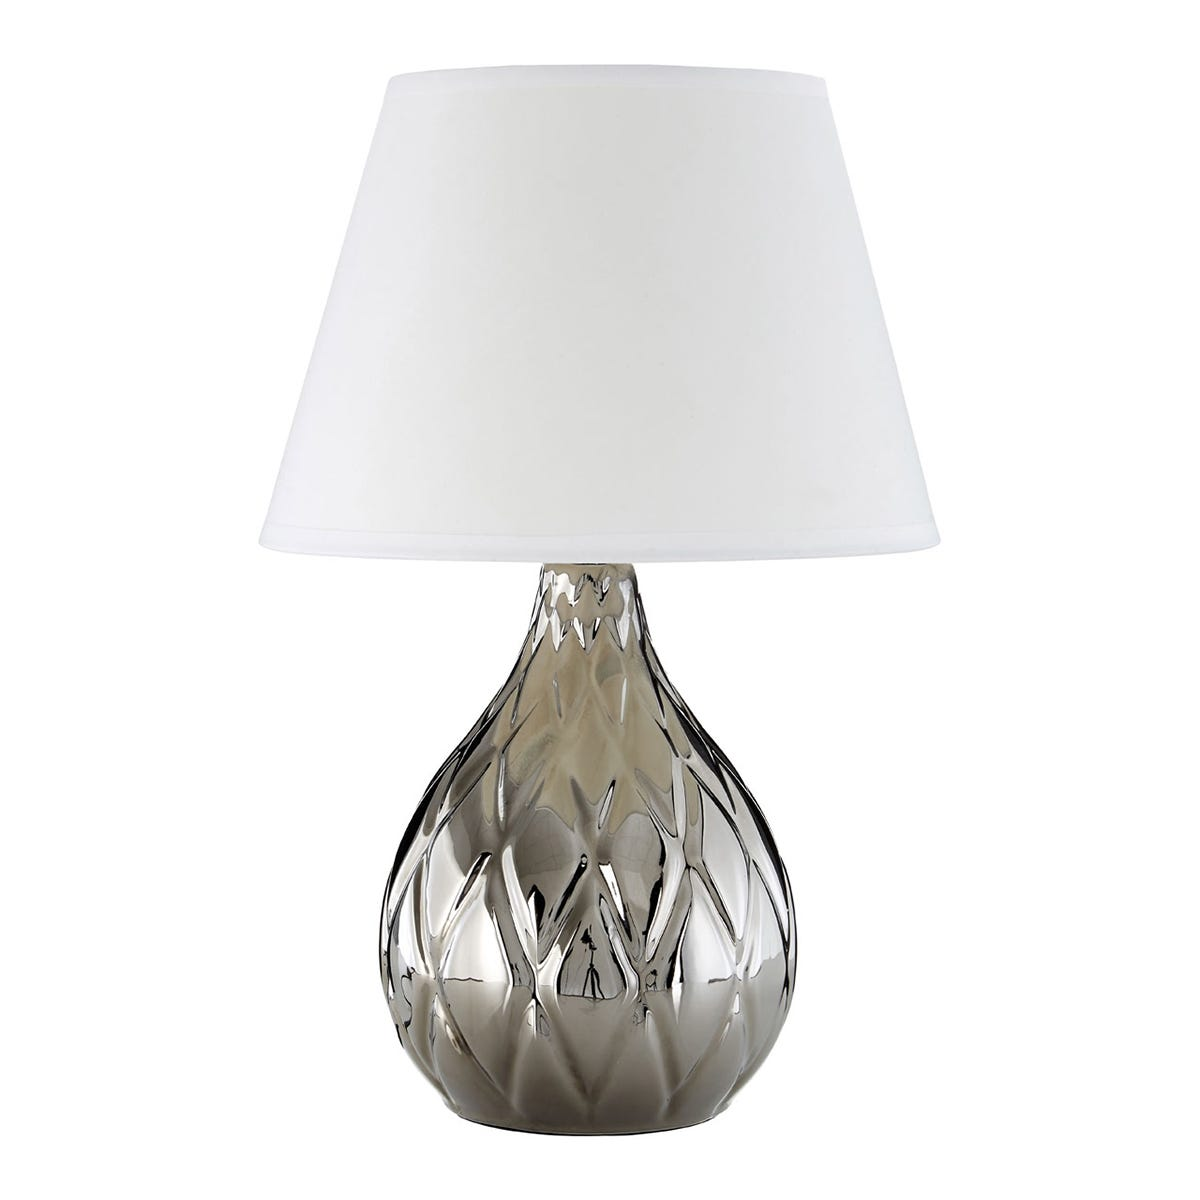 Premier Housewares Hannah Table Lamp in Silver Ceramic with Diamond Detail & White Shade